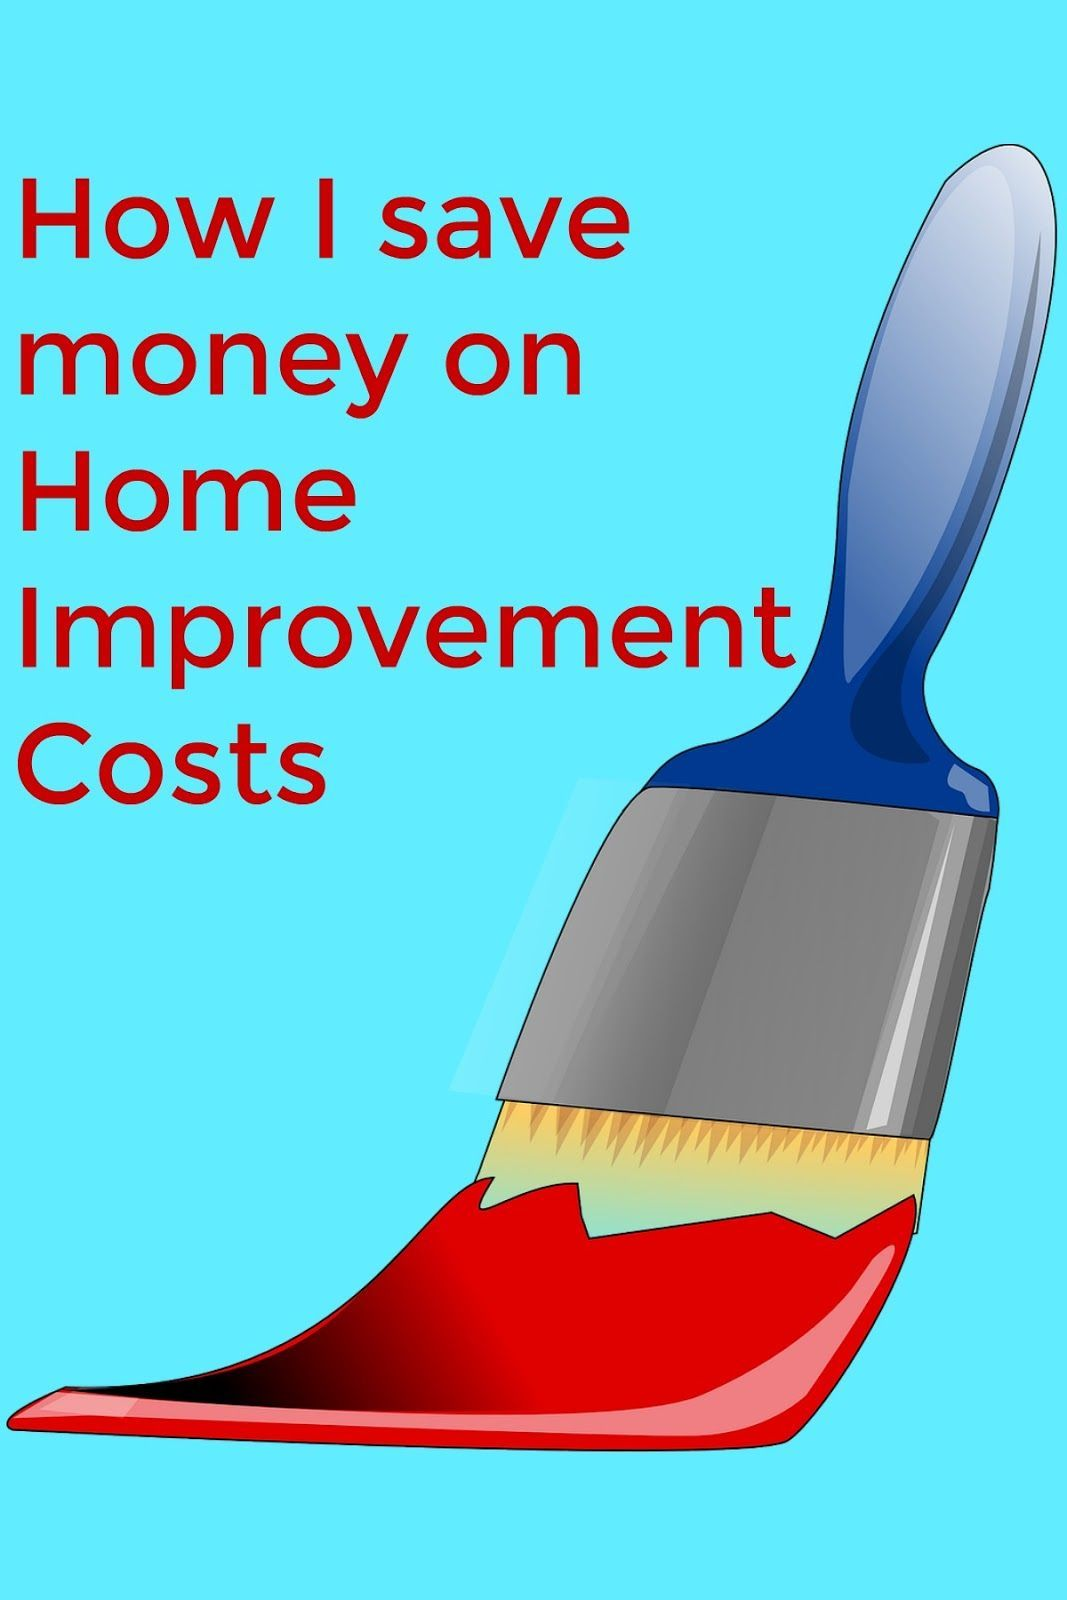 How I am saving on Home Improvement Costs | Frugal, Budgeting 101 ...